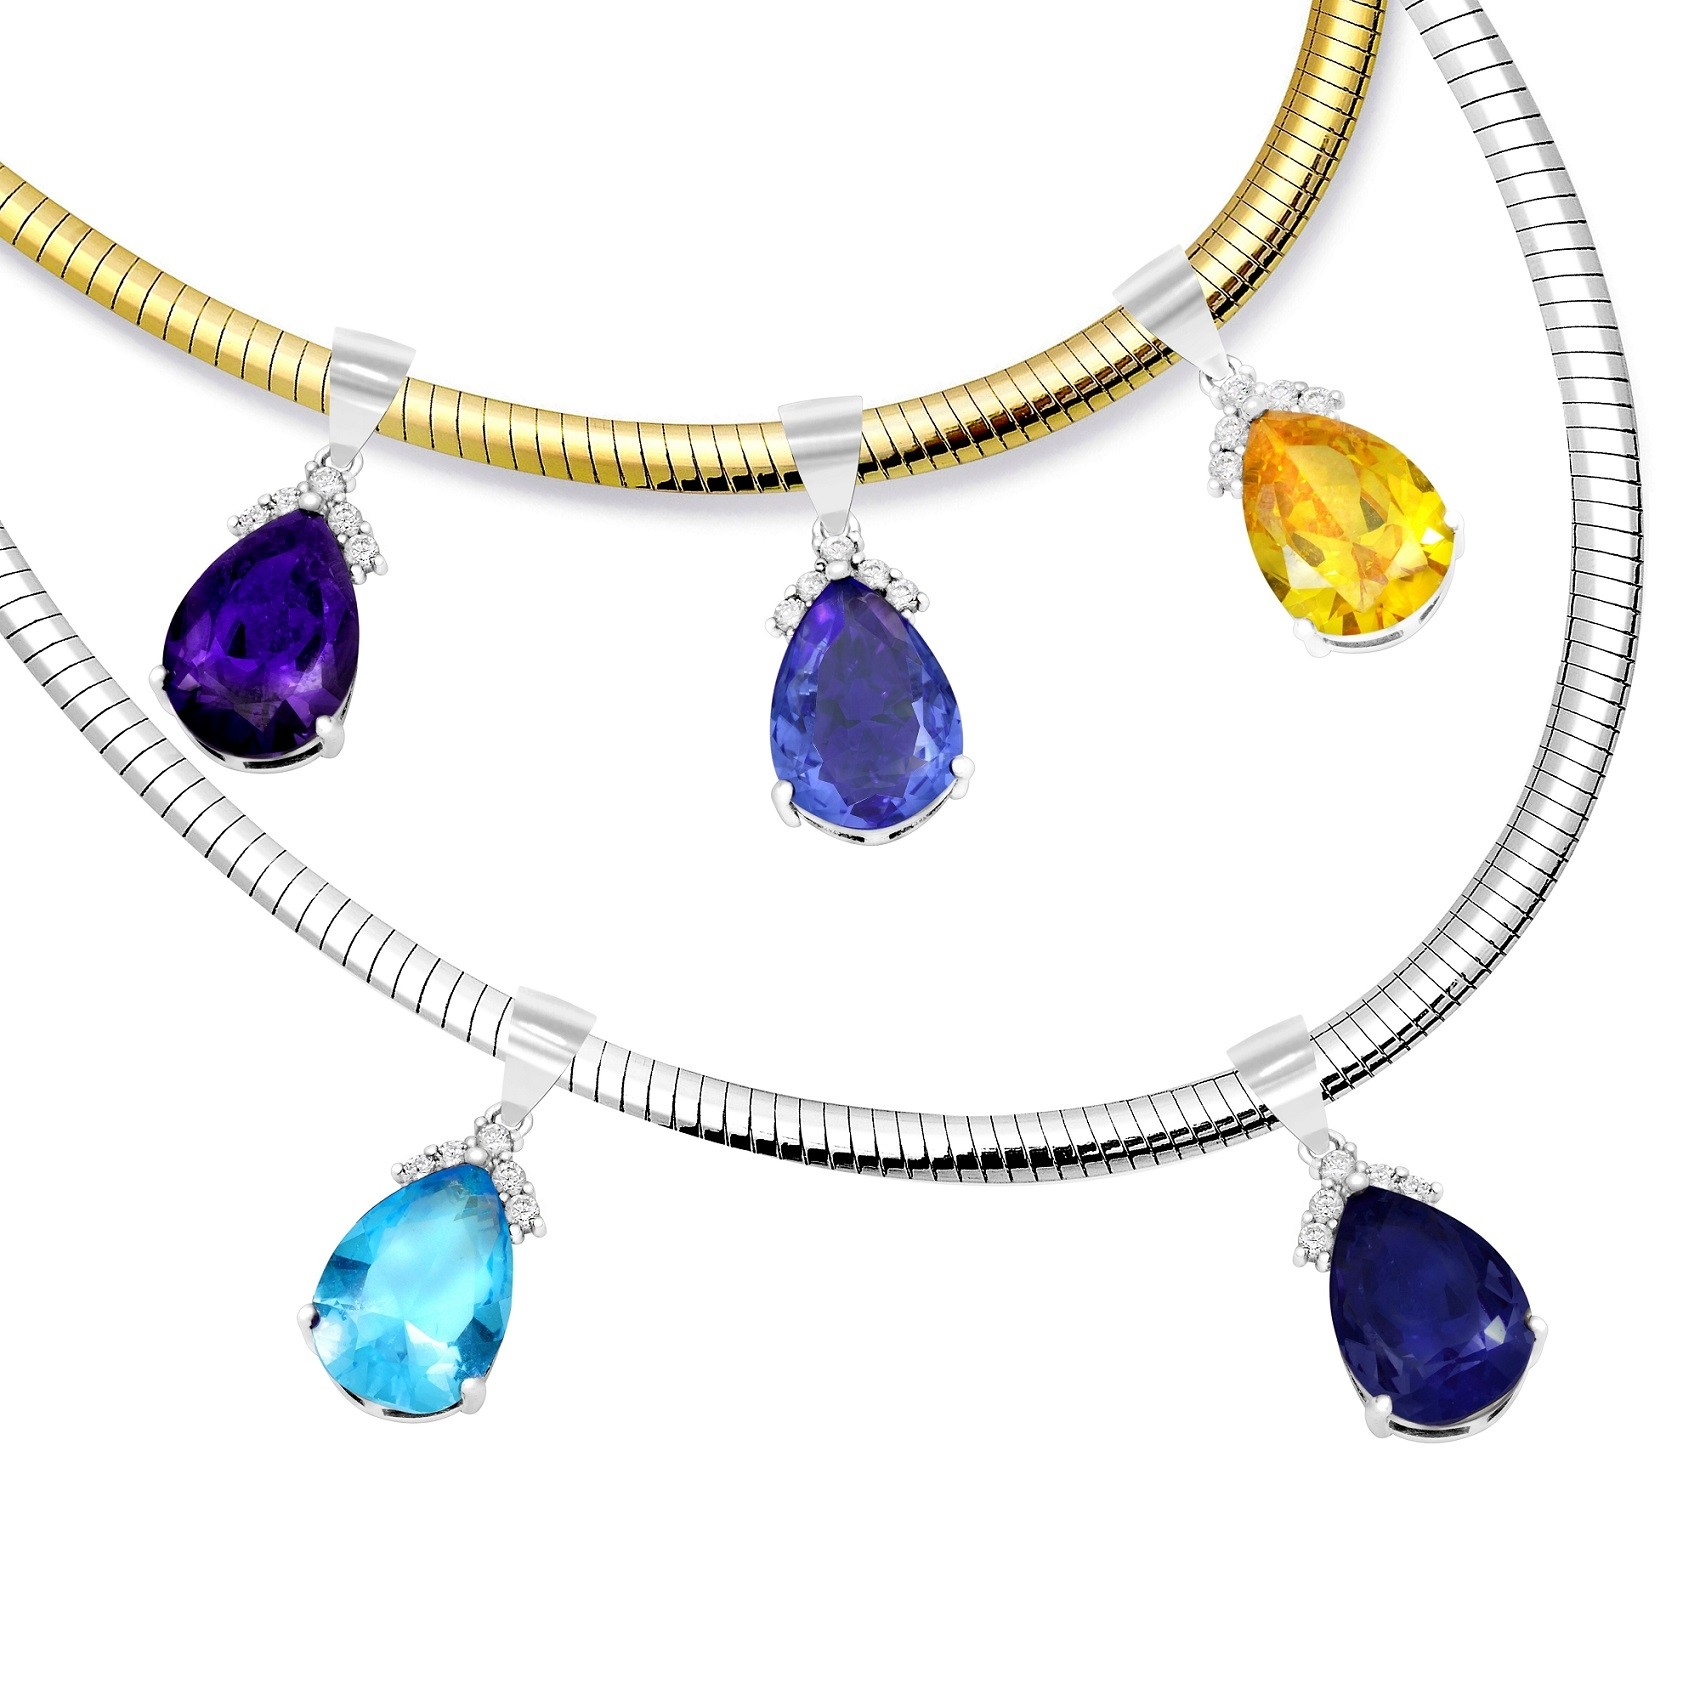 4 m Layered Reversible Omega 14 Karat Gold wit 925 Silver with Free 8.5 Carat choose of 5 different color Topaz Tear Drop Pendant $60.00 Value